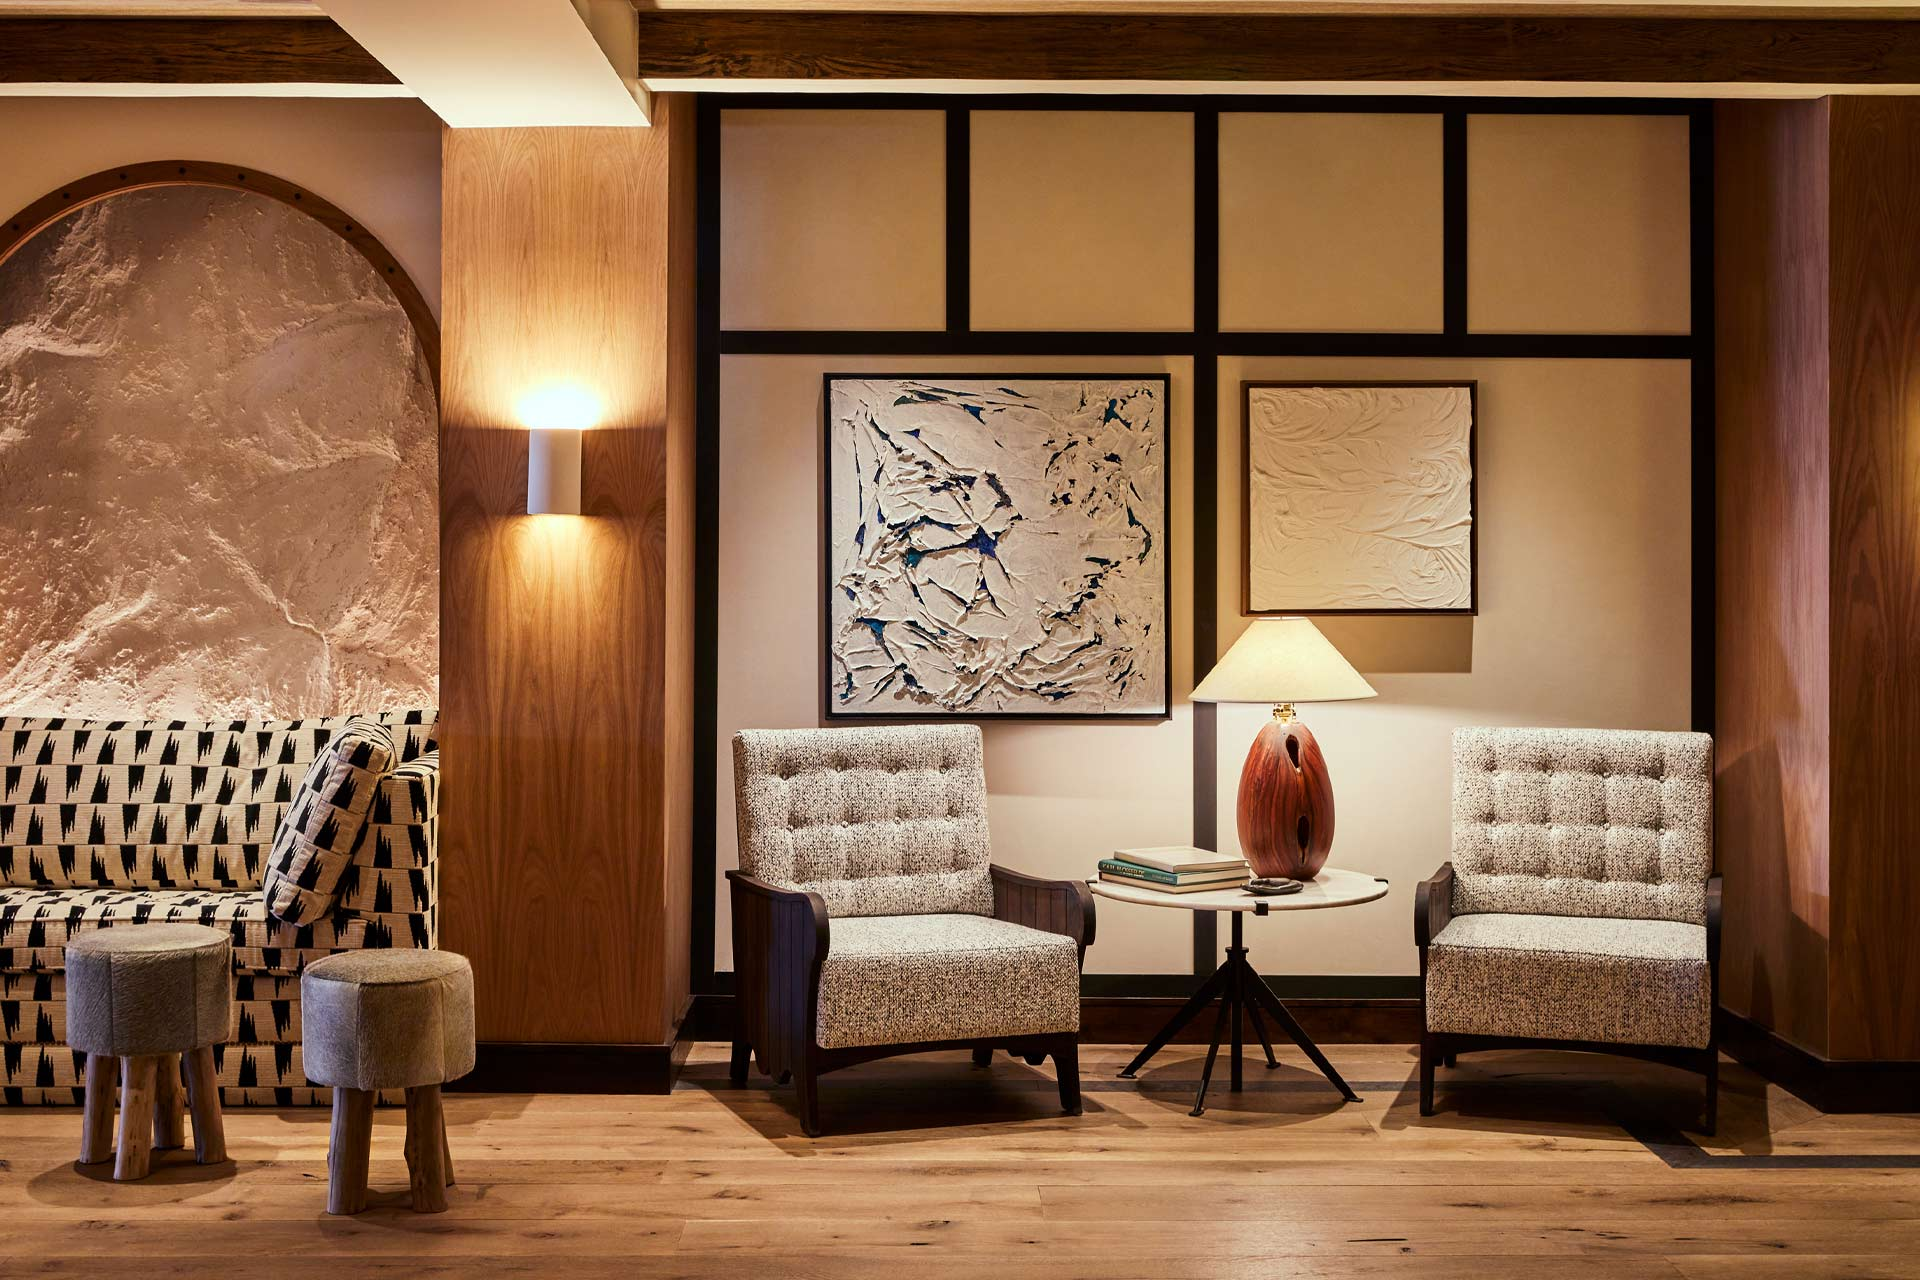 Madeline Hotel & Residences, Auberge Resorts Collection in Telluride, Colorado